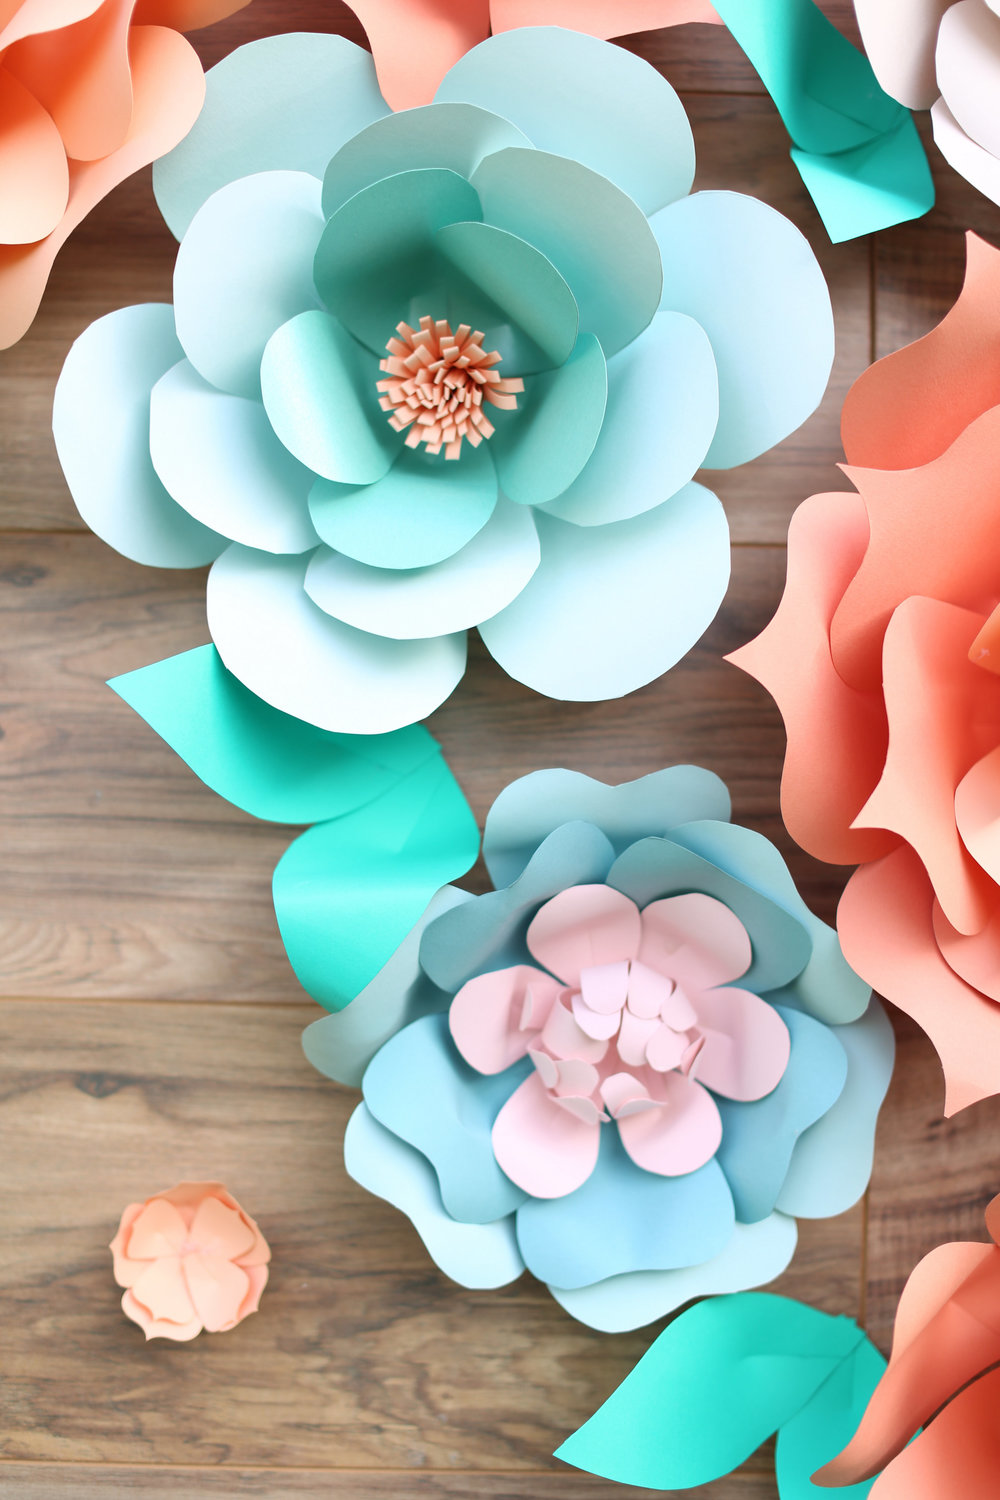 rustic giant paper flower backdrop_rustic wood backdrop_ pallette backdrop_peach and teal giant paper flower backdrop_ peach wedding dessert decor_ peach and teal wedding decor ideas_ unique rustic decor 1.jpg